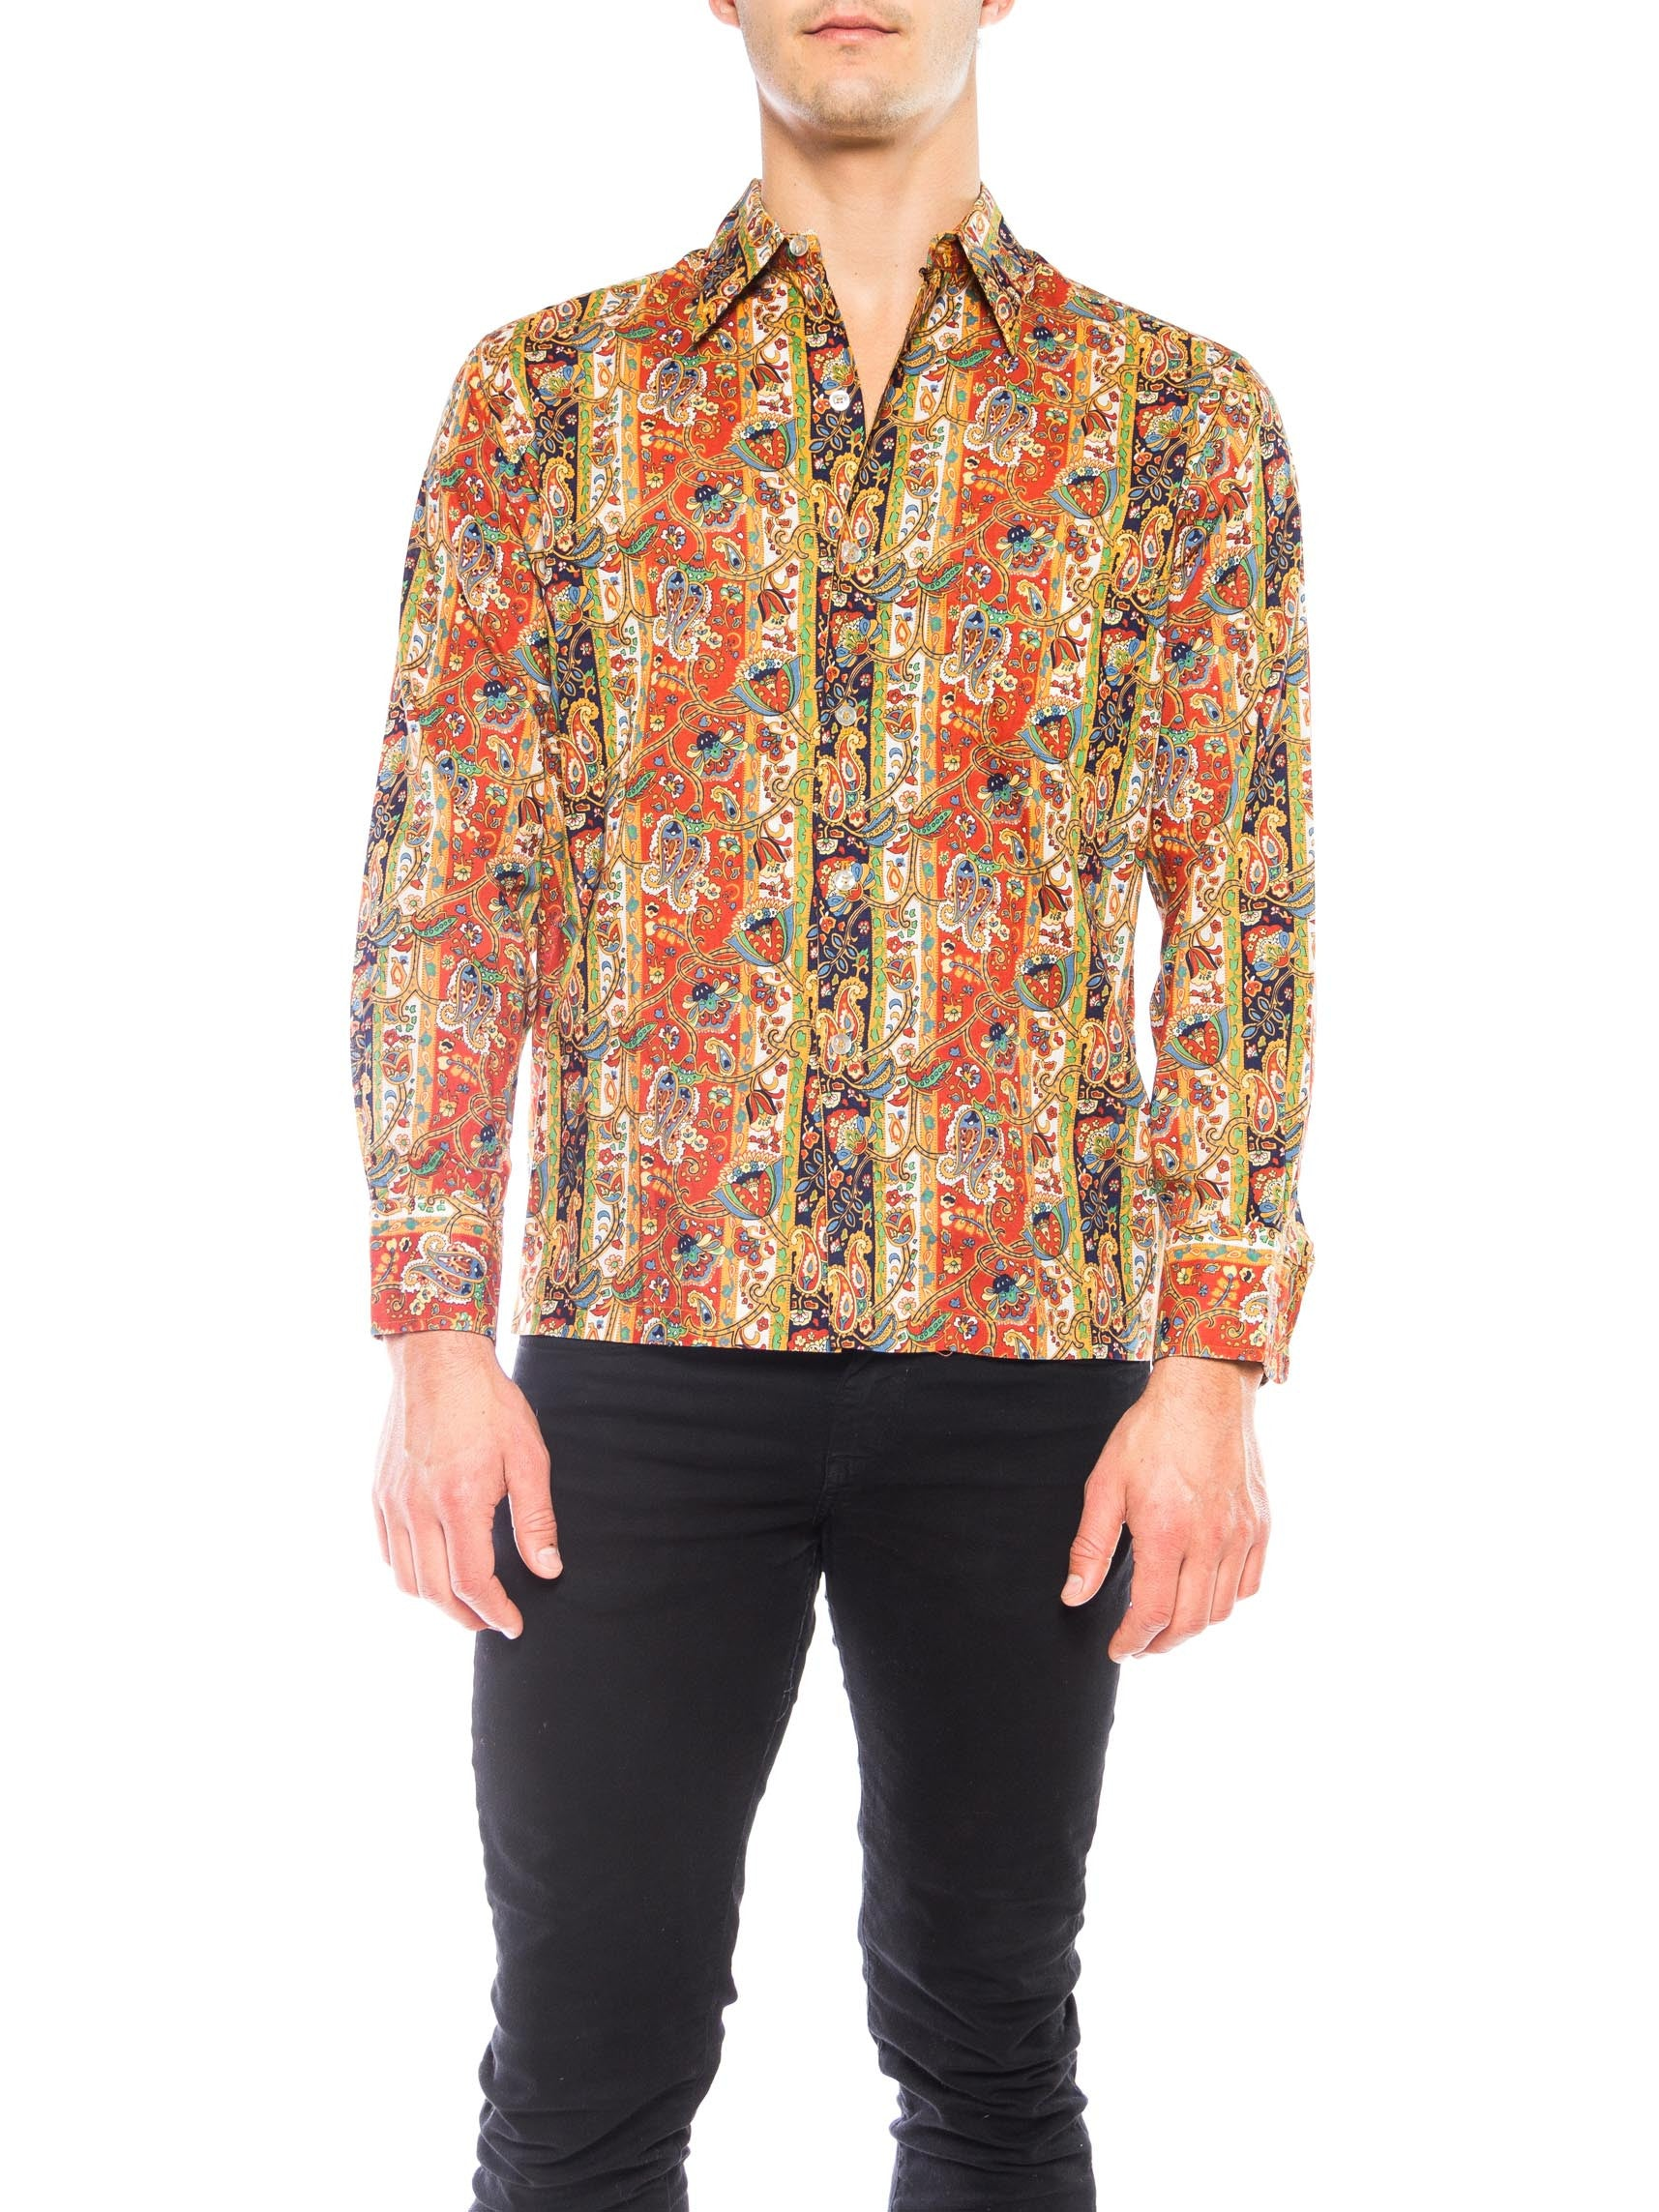 1960s Men's Paisley Printed Cotton Shirt